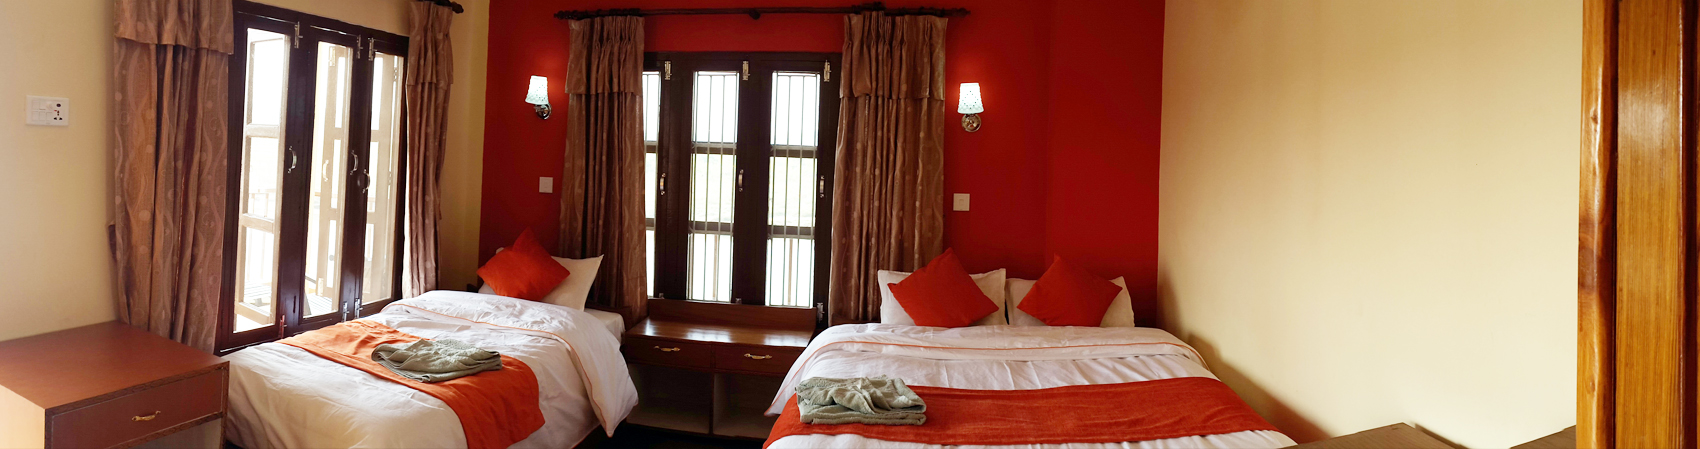 Double Bed Bedroom Chitwan Nepal